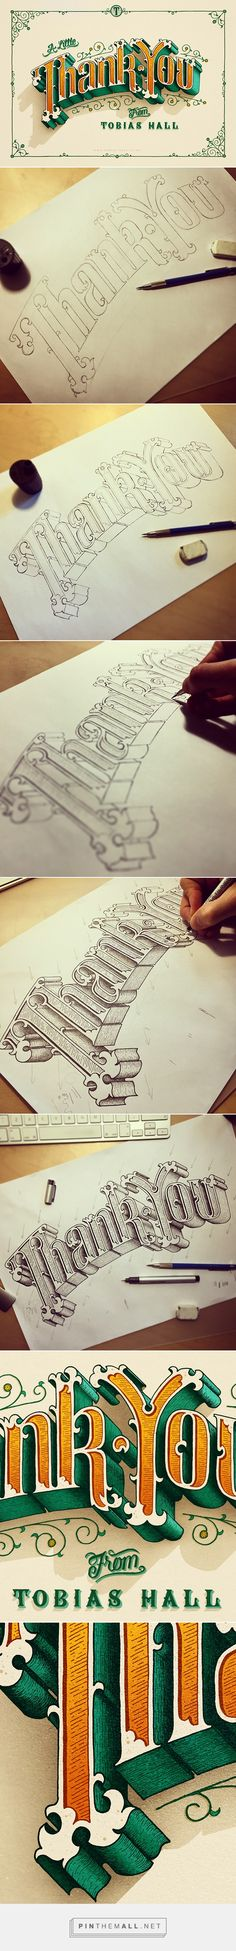 Thank You - Tobias Hall lettering sketch process